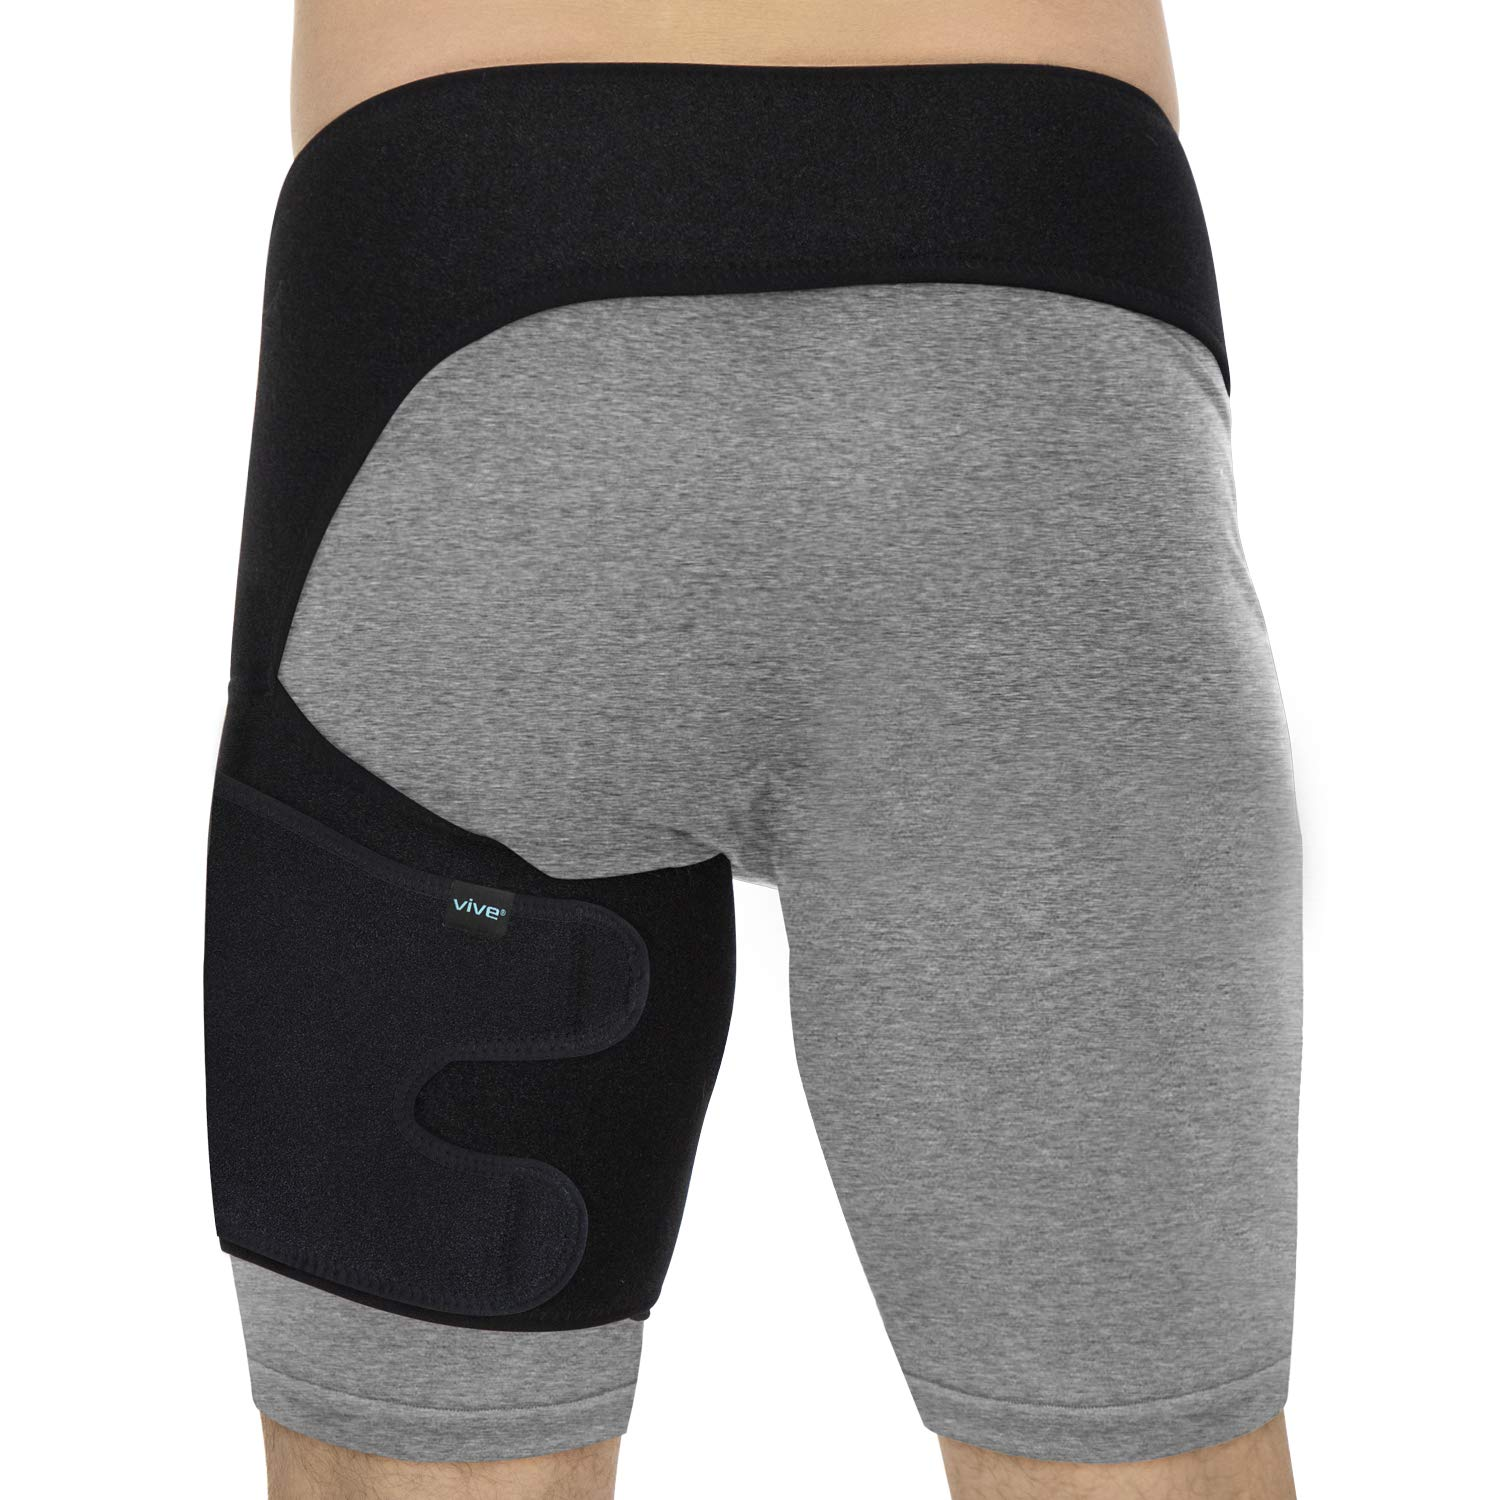 Vive Groin & Hip Brace - Sciatica Wrap for Men & Women - Compression Support for Nerve Pain Relief - Thigh, Hamstring Recovery for Joints, Flexor Strains, Pulled Muscles, Quadricep PT (Waist: 48''-58'')